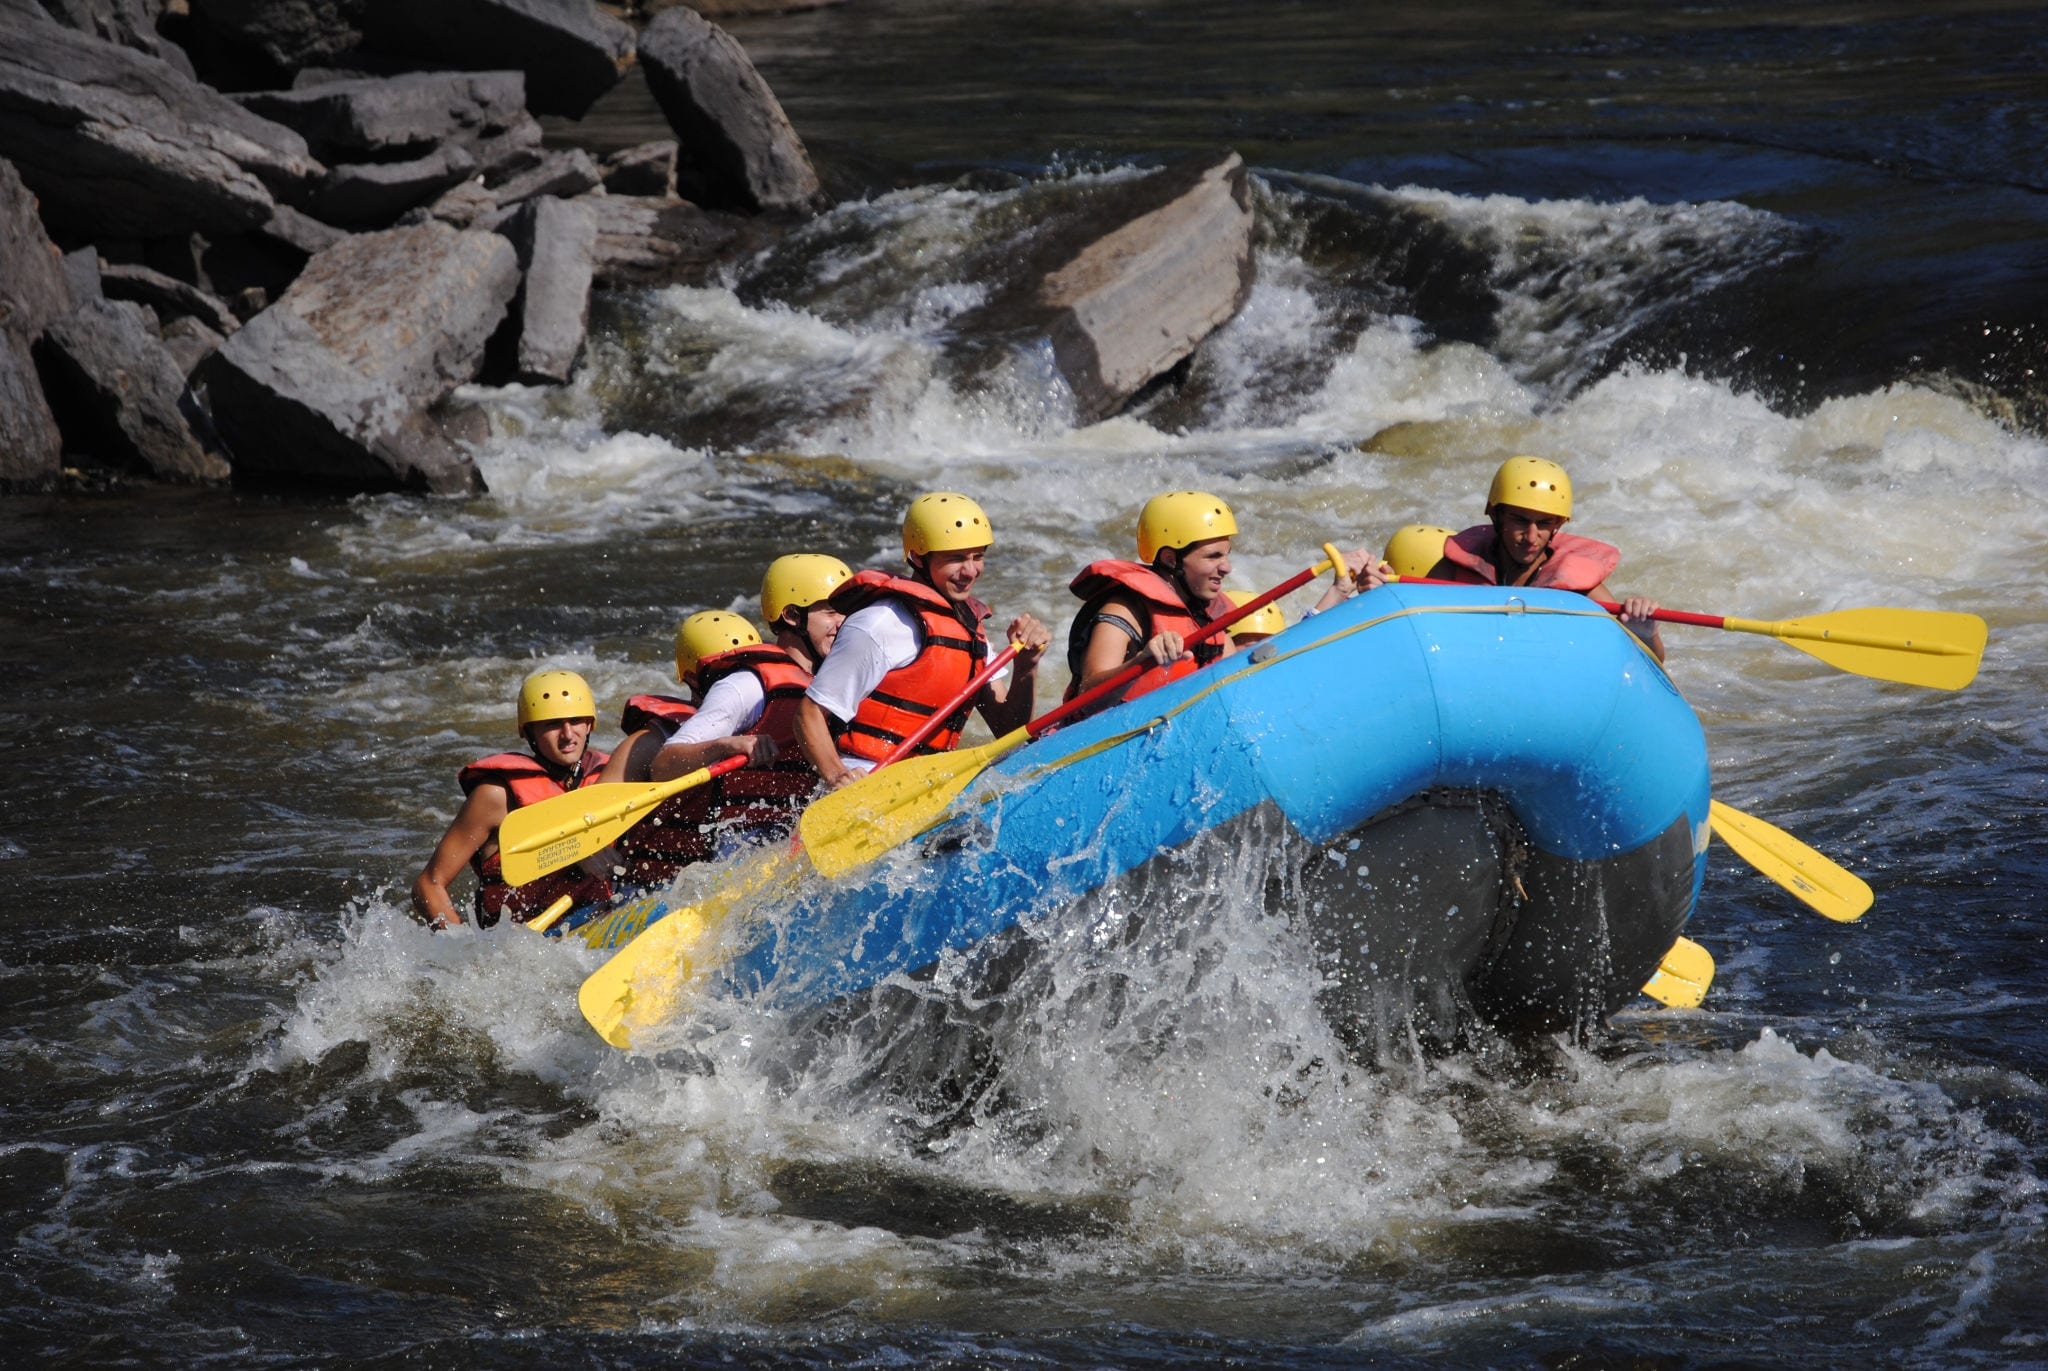 BLACK RIVER RAFTING TRIP FOR 1 <br/> Donated by: WHITEWATER CHALLENGERS <br/> Valued at: $69